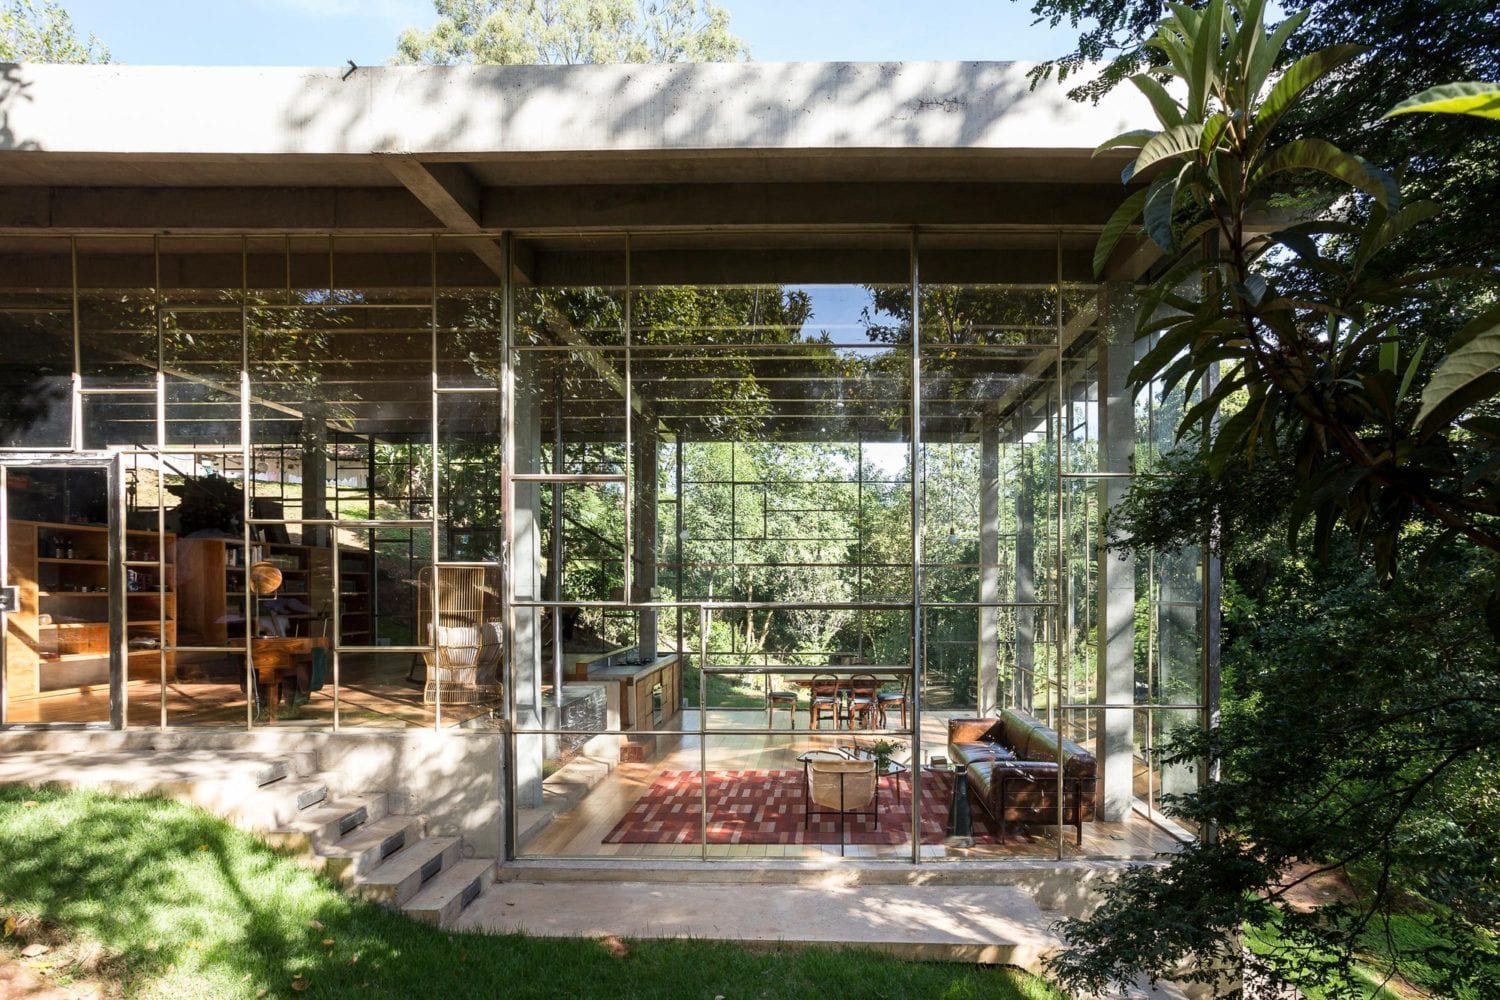 Library House Casa Biblioteca Brazil By Atelier Branco | Yellowtrace